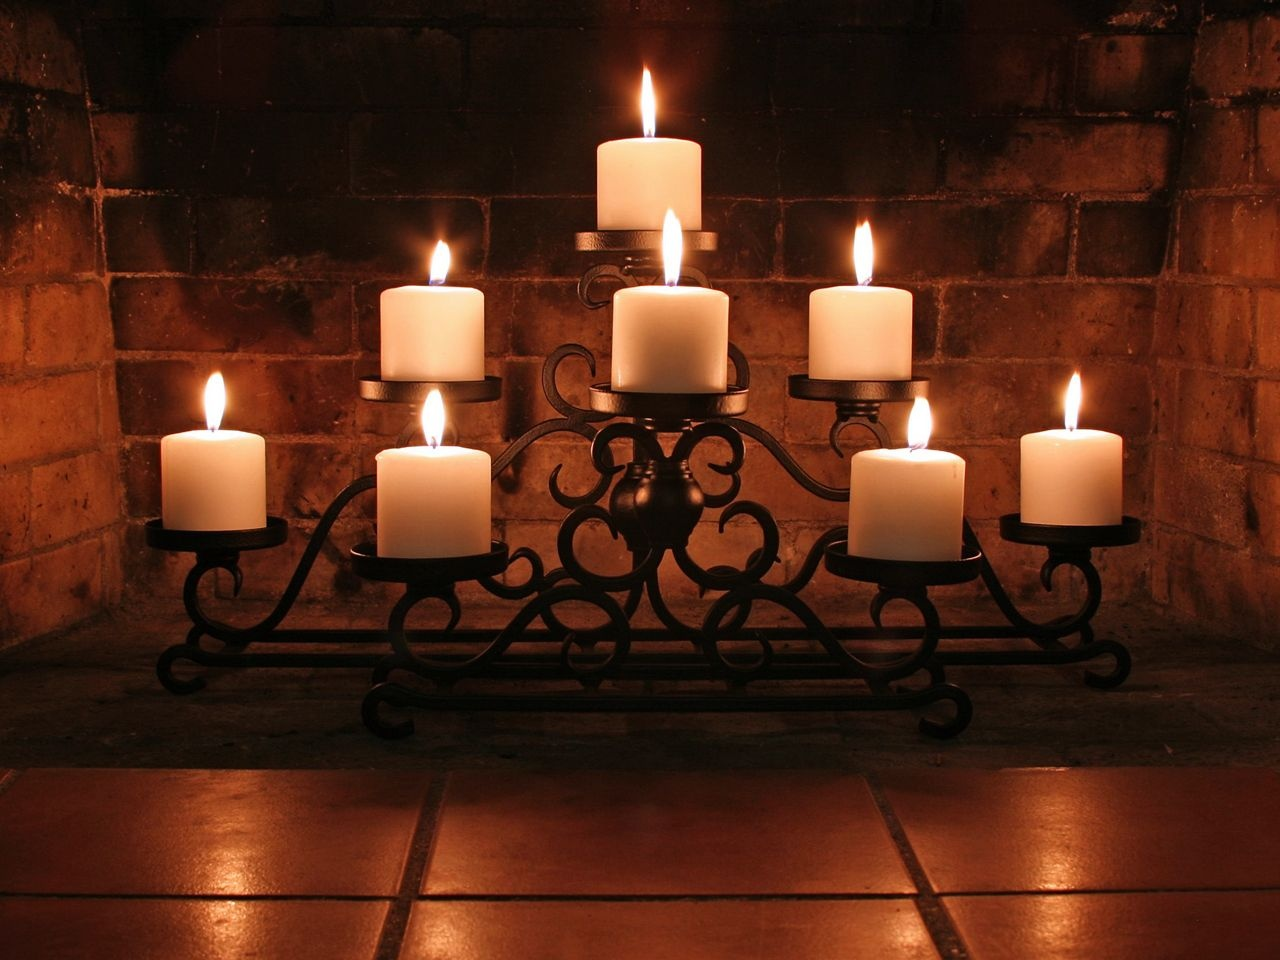 1280x960 Candles and bricks